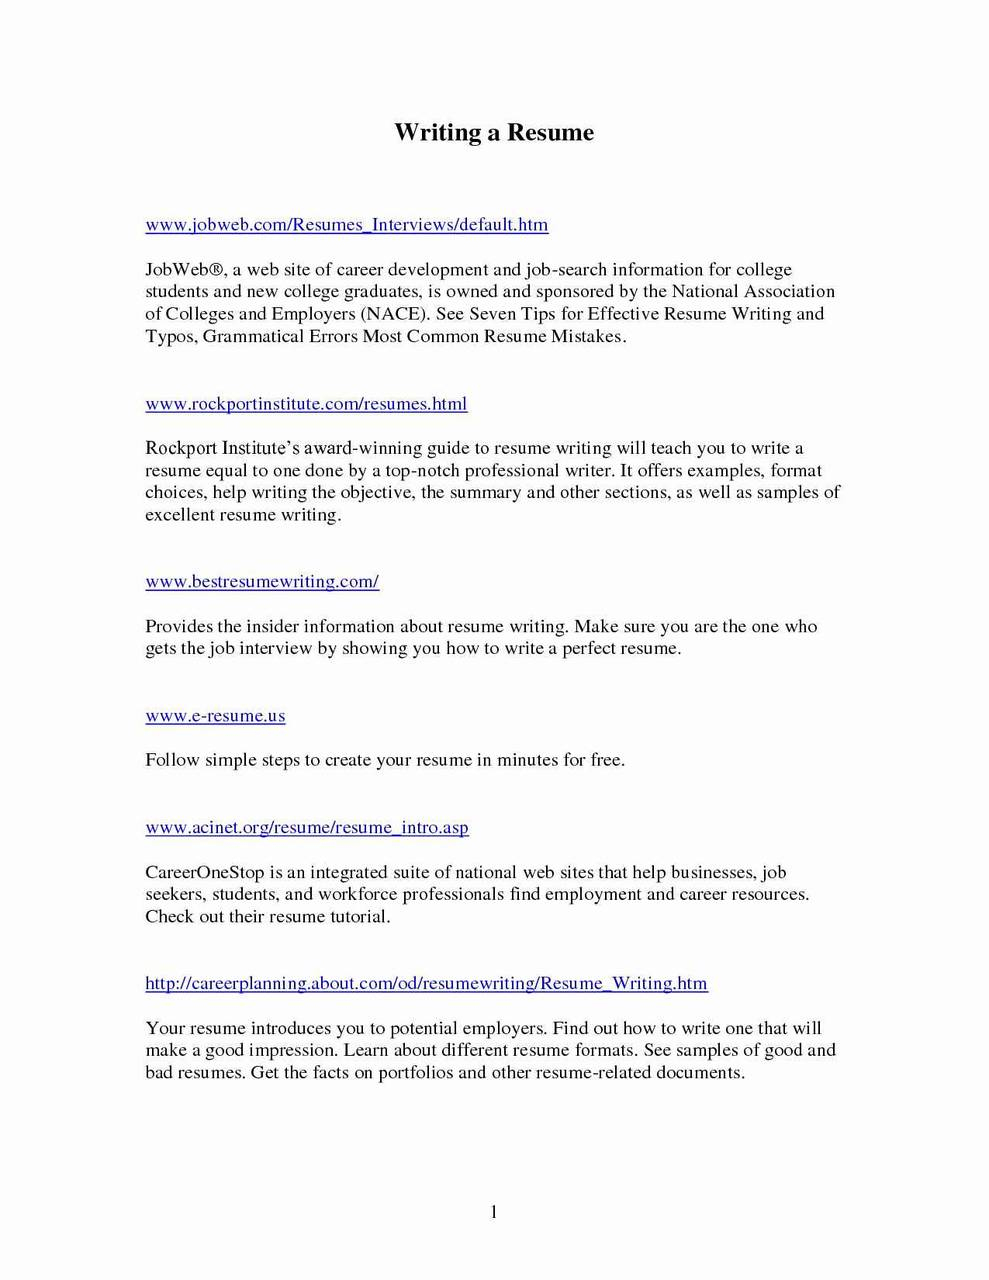 Linkedin Import Resume - 76 Beautiful Graphy Example Resume with Linkedin Url